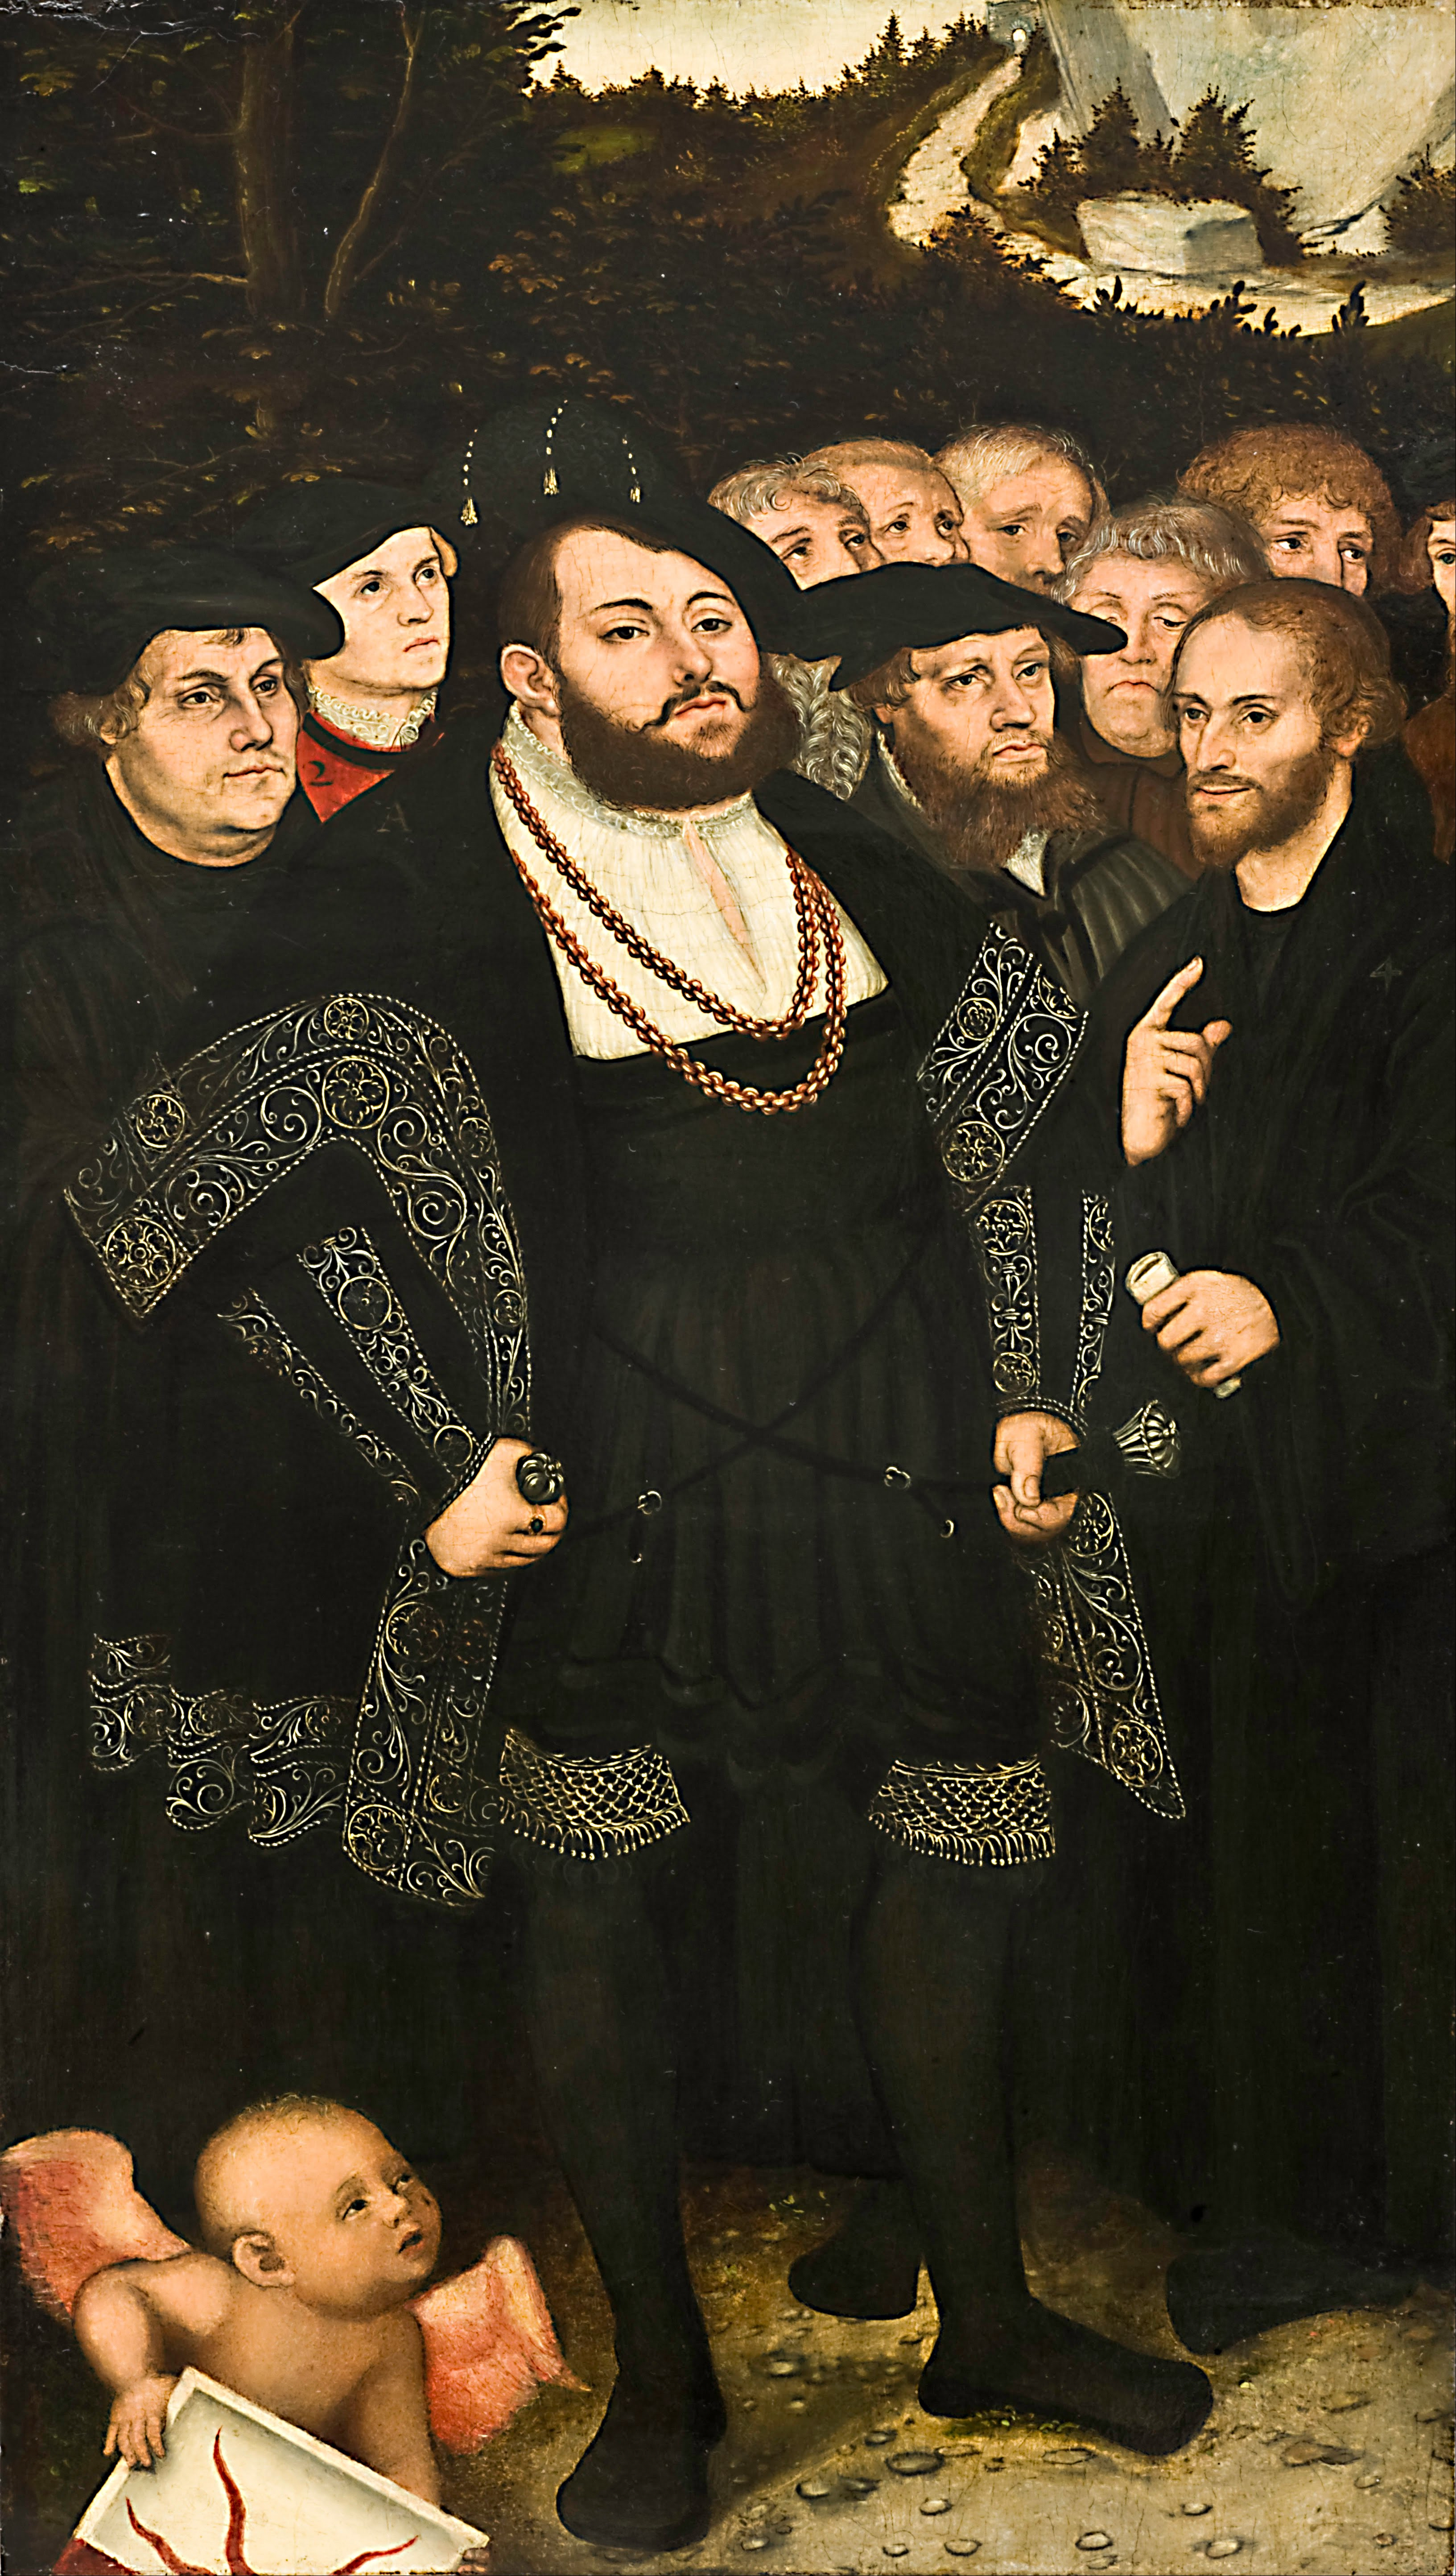 File:Lucas Cranach the Younger - Martin Luther and the Wittenberg Reformers - Google Art